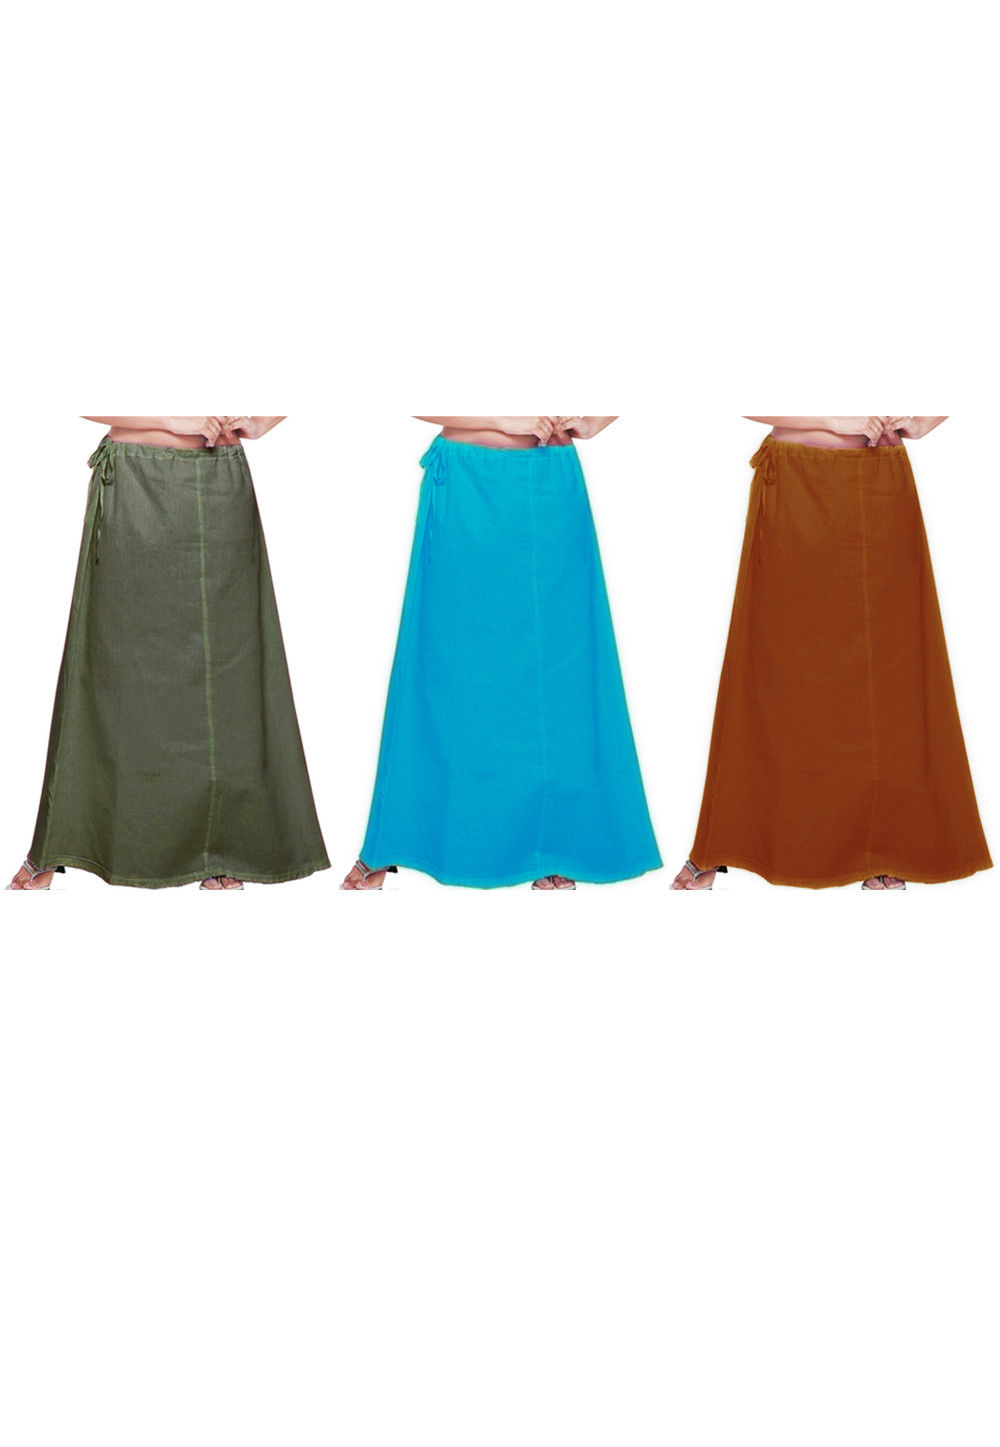 Combo Set Cotton Petticoat in Olive Green, Turquoise and Rust